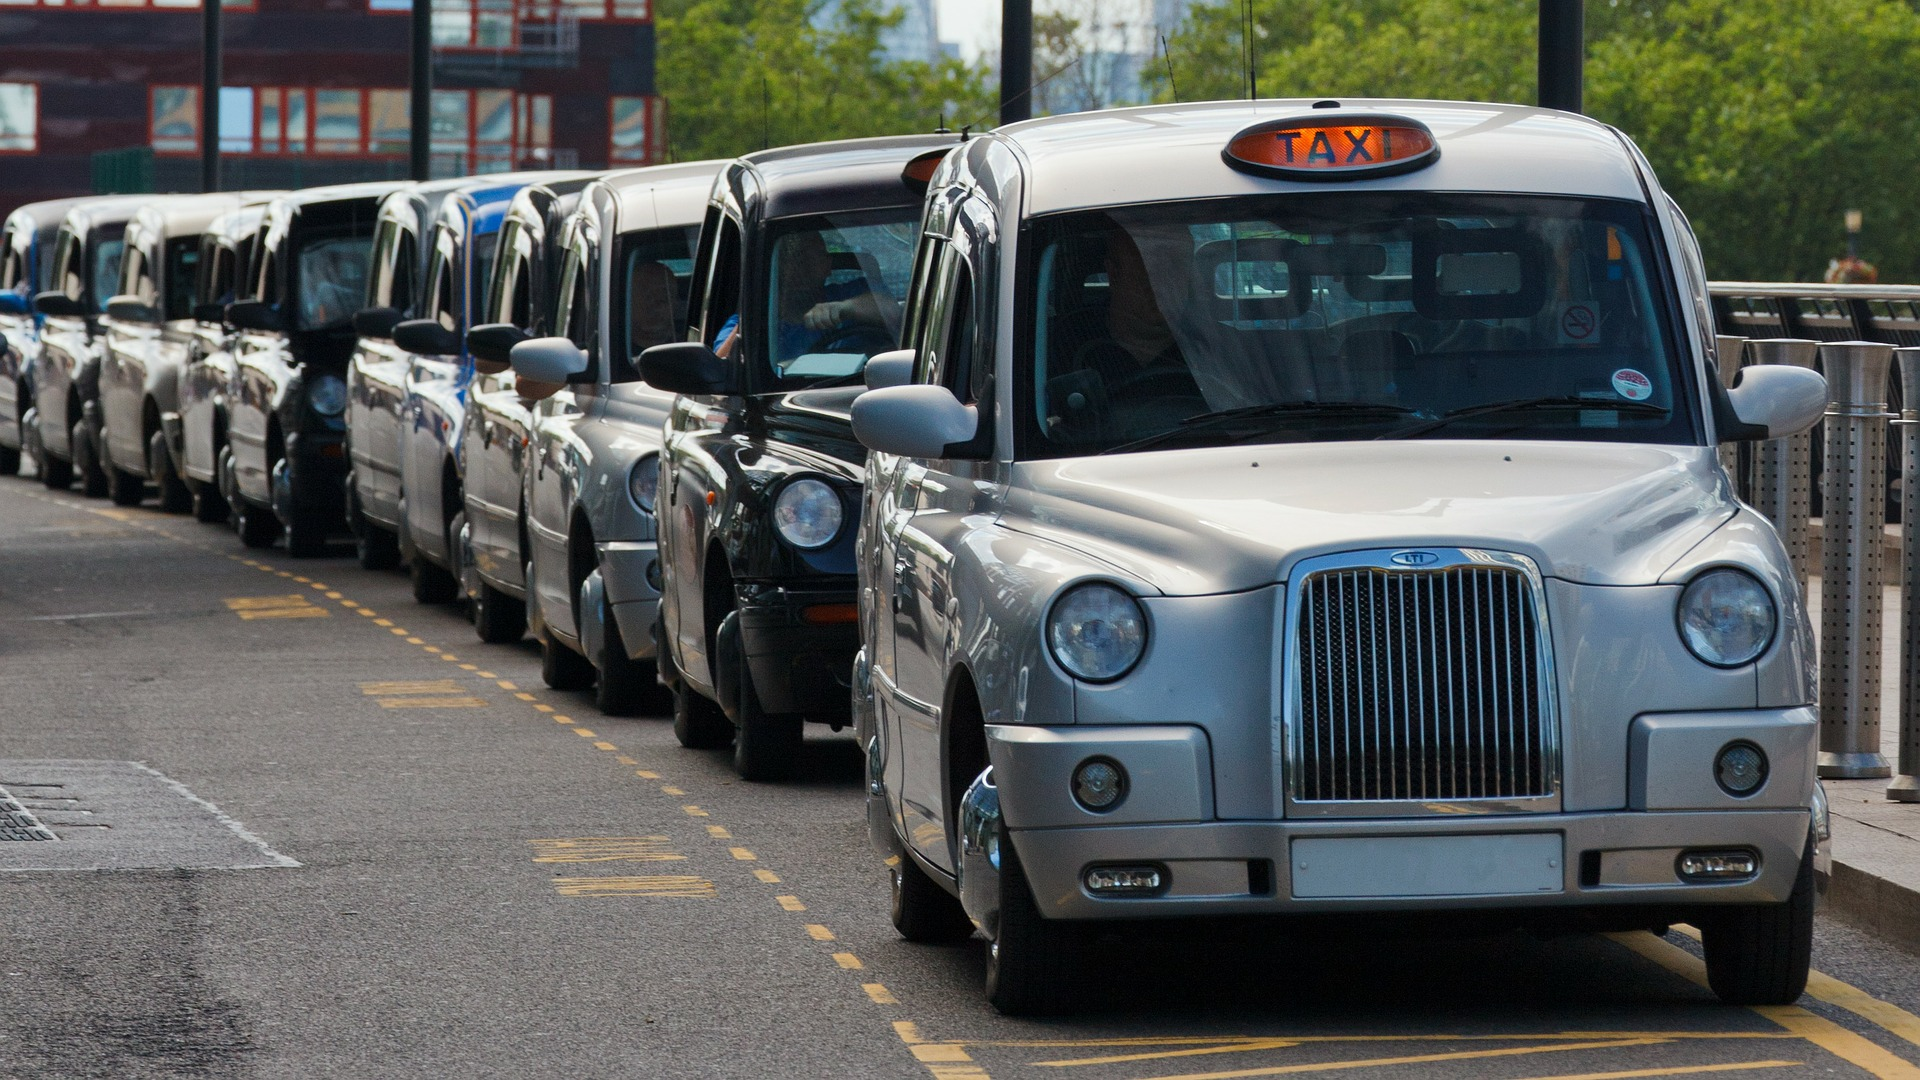 Taxi Drivers Can Help International Travellers Self-Isolate